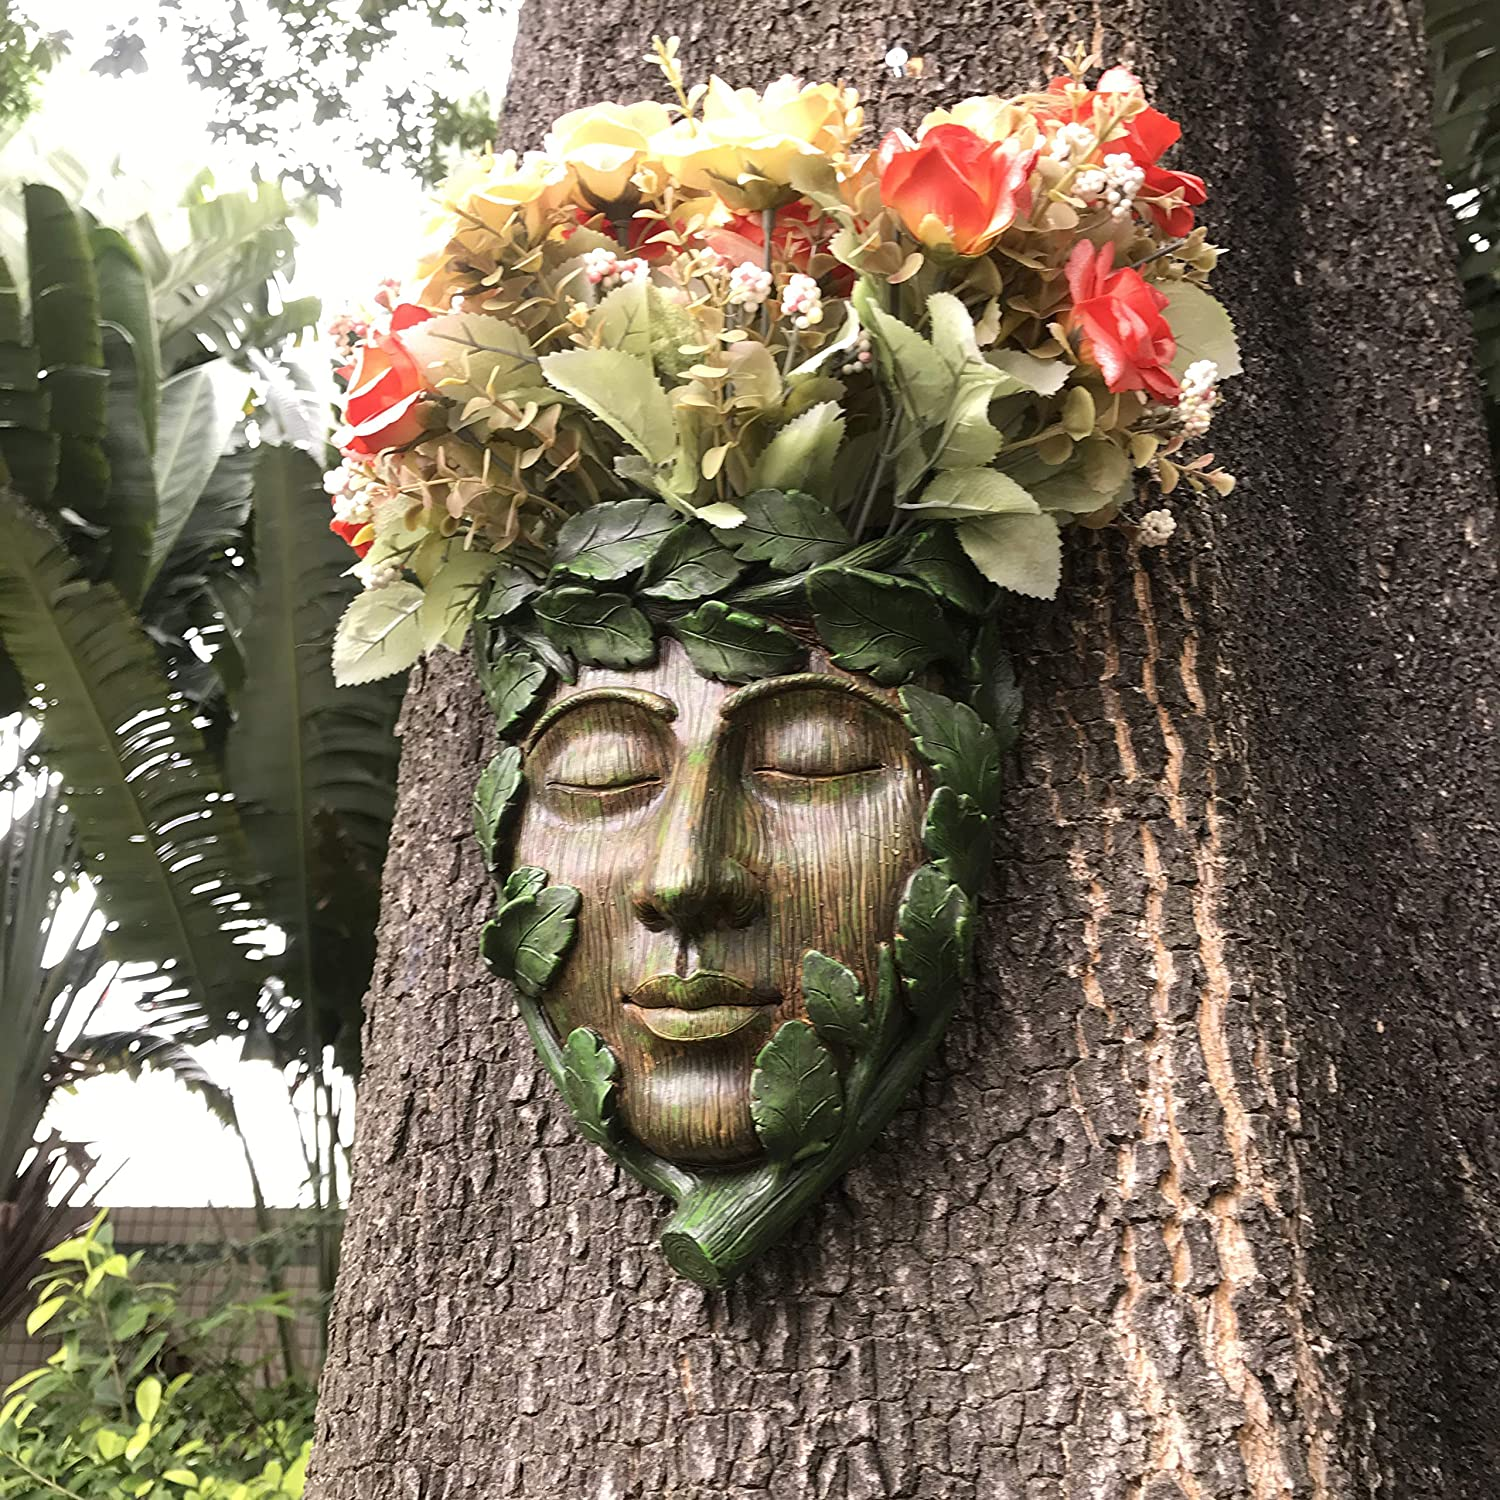 MARYTUMM Young Man Tree Face Decor Sculpture Flower Planter Pot by Waterproof Resin, Face on The Tree for Garden Decor, Tree Decor Outdoor